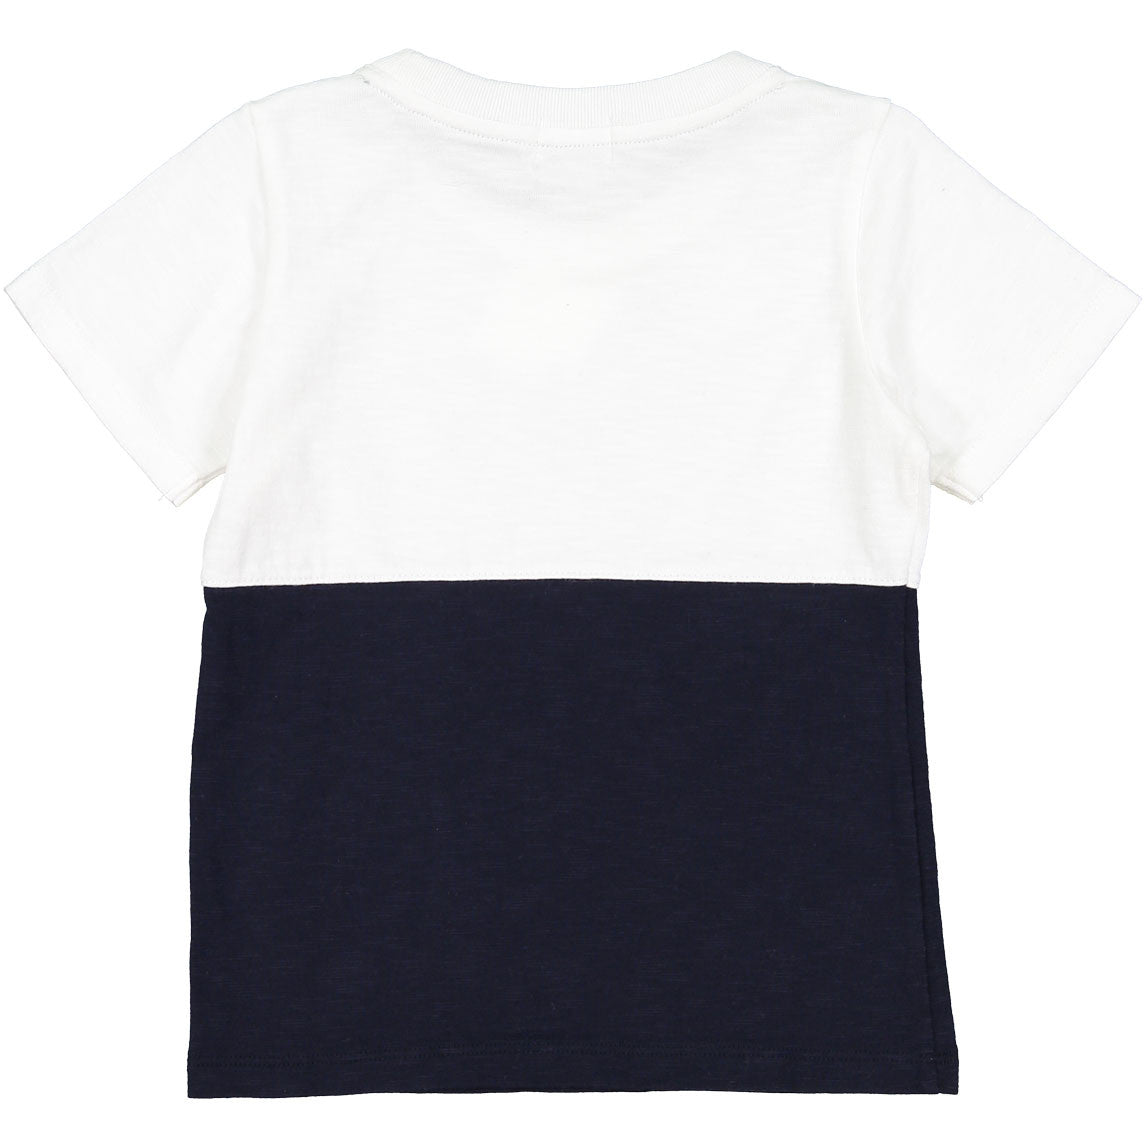 Arch and Line White/Navy Full - Ladida